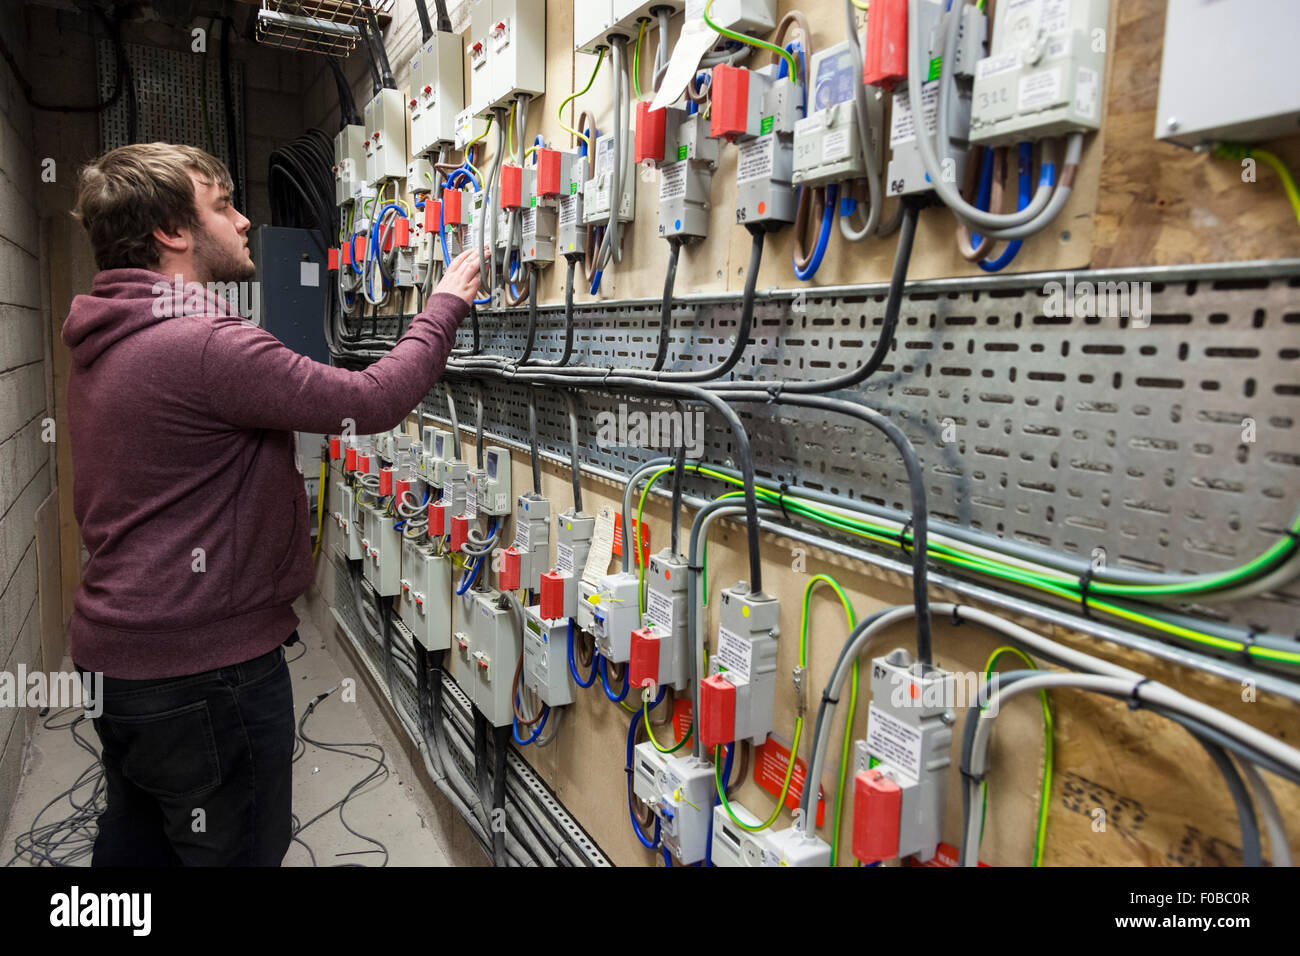 Man reading electricity meters, England, UK - Stock Image